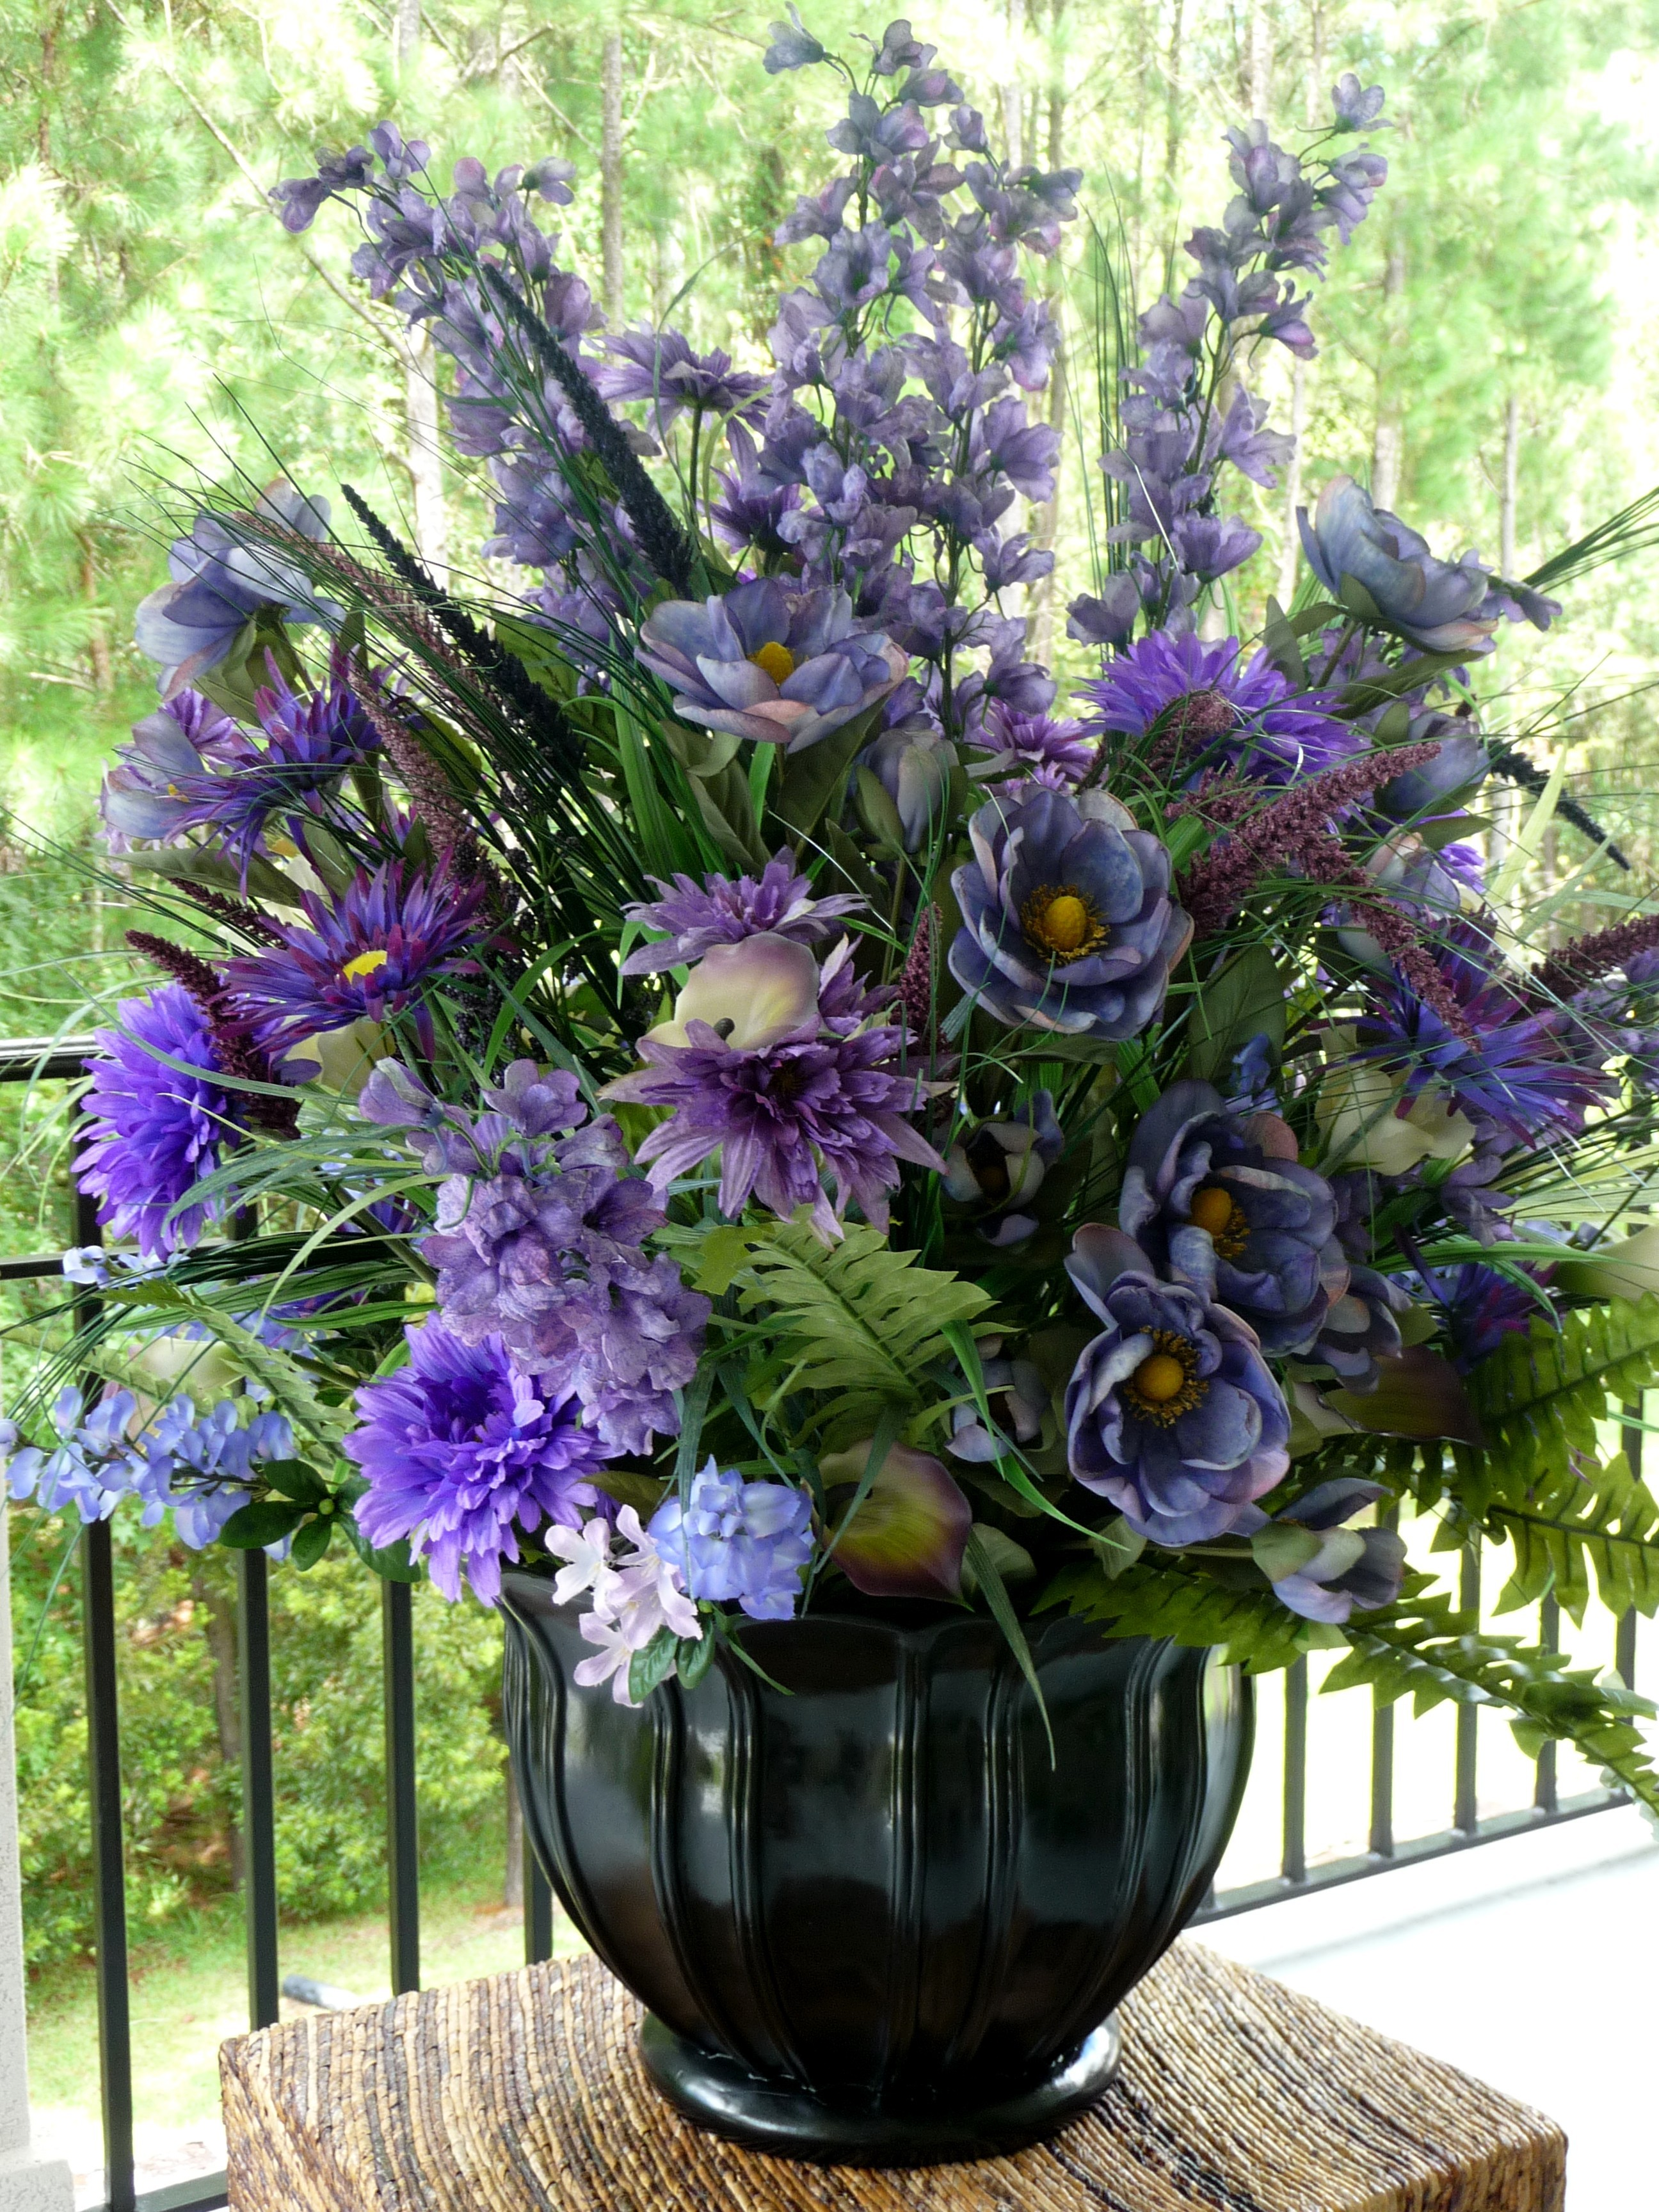 Ceremony, Inspiration, Reception, Flowers & Decor, purple, green, Ceremony Flowers, Centerpieces, Flowers, Wedding, Board, Urn, Silks, Savannah event decor